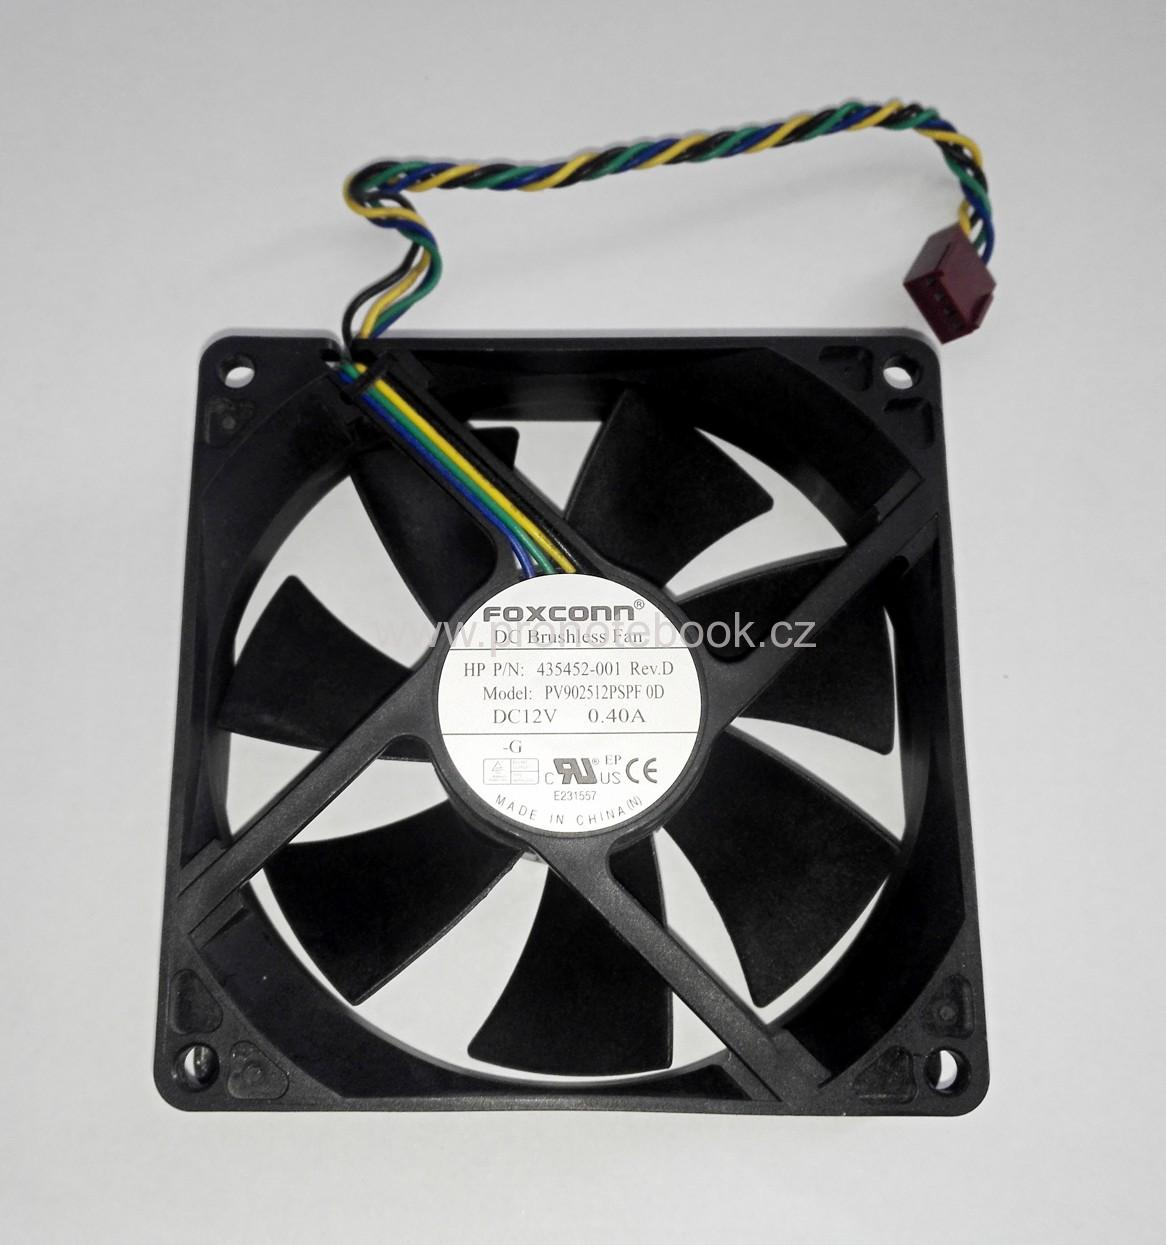 Foxconn Dell, HP, PV902512PSPF 0D Fan 12V 0.4A 4pin 92x92x25mm